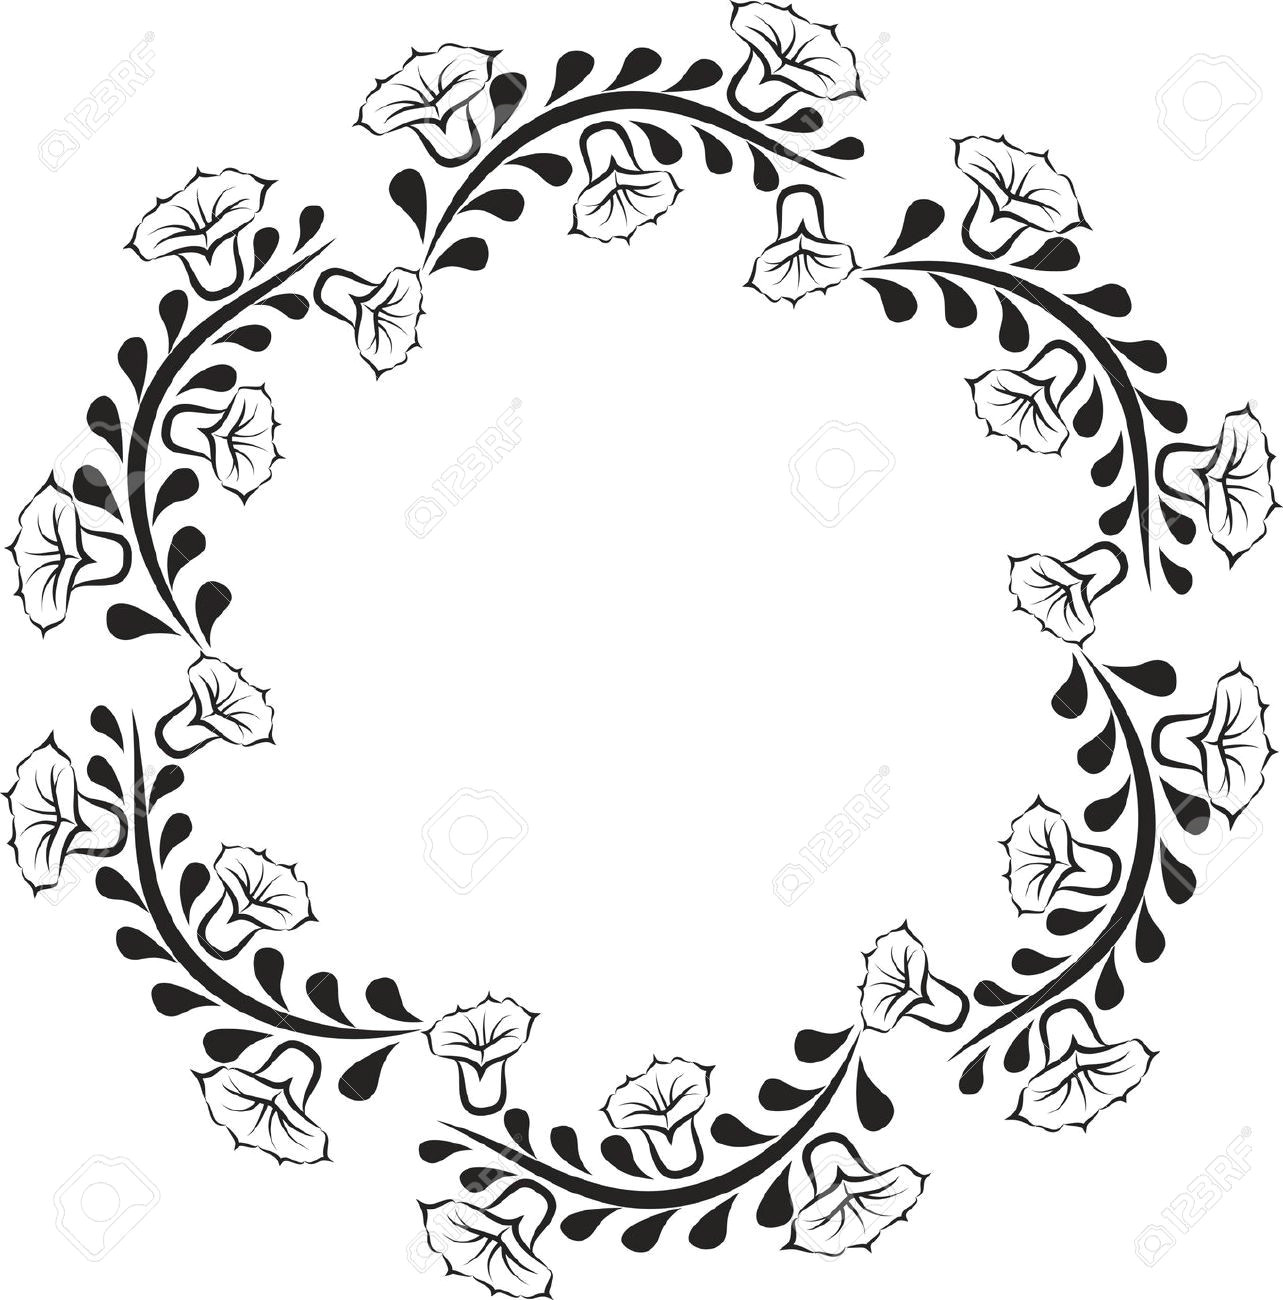 Drawing Of Flower Frame Silhouette Of Round Floral Frame Royalty Free Cliparts Vectors and